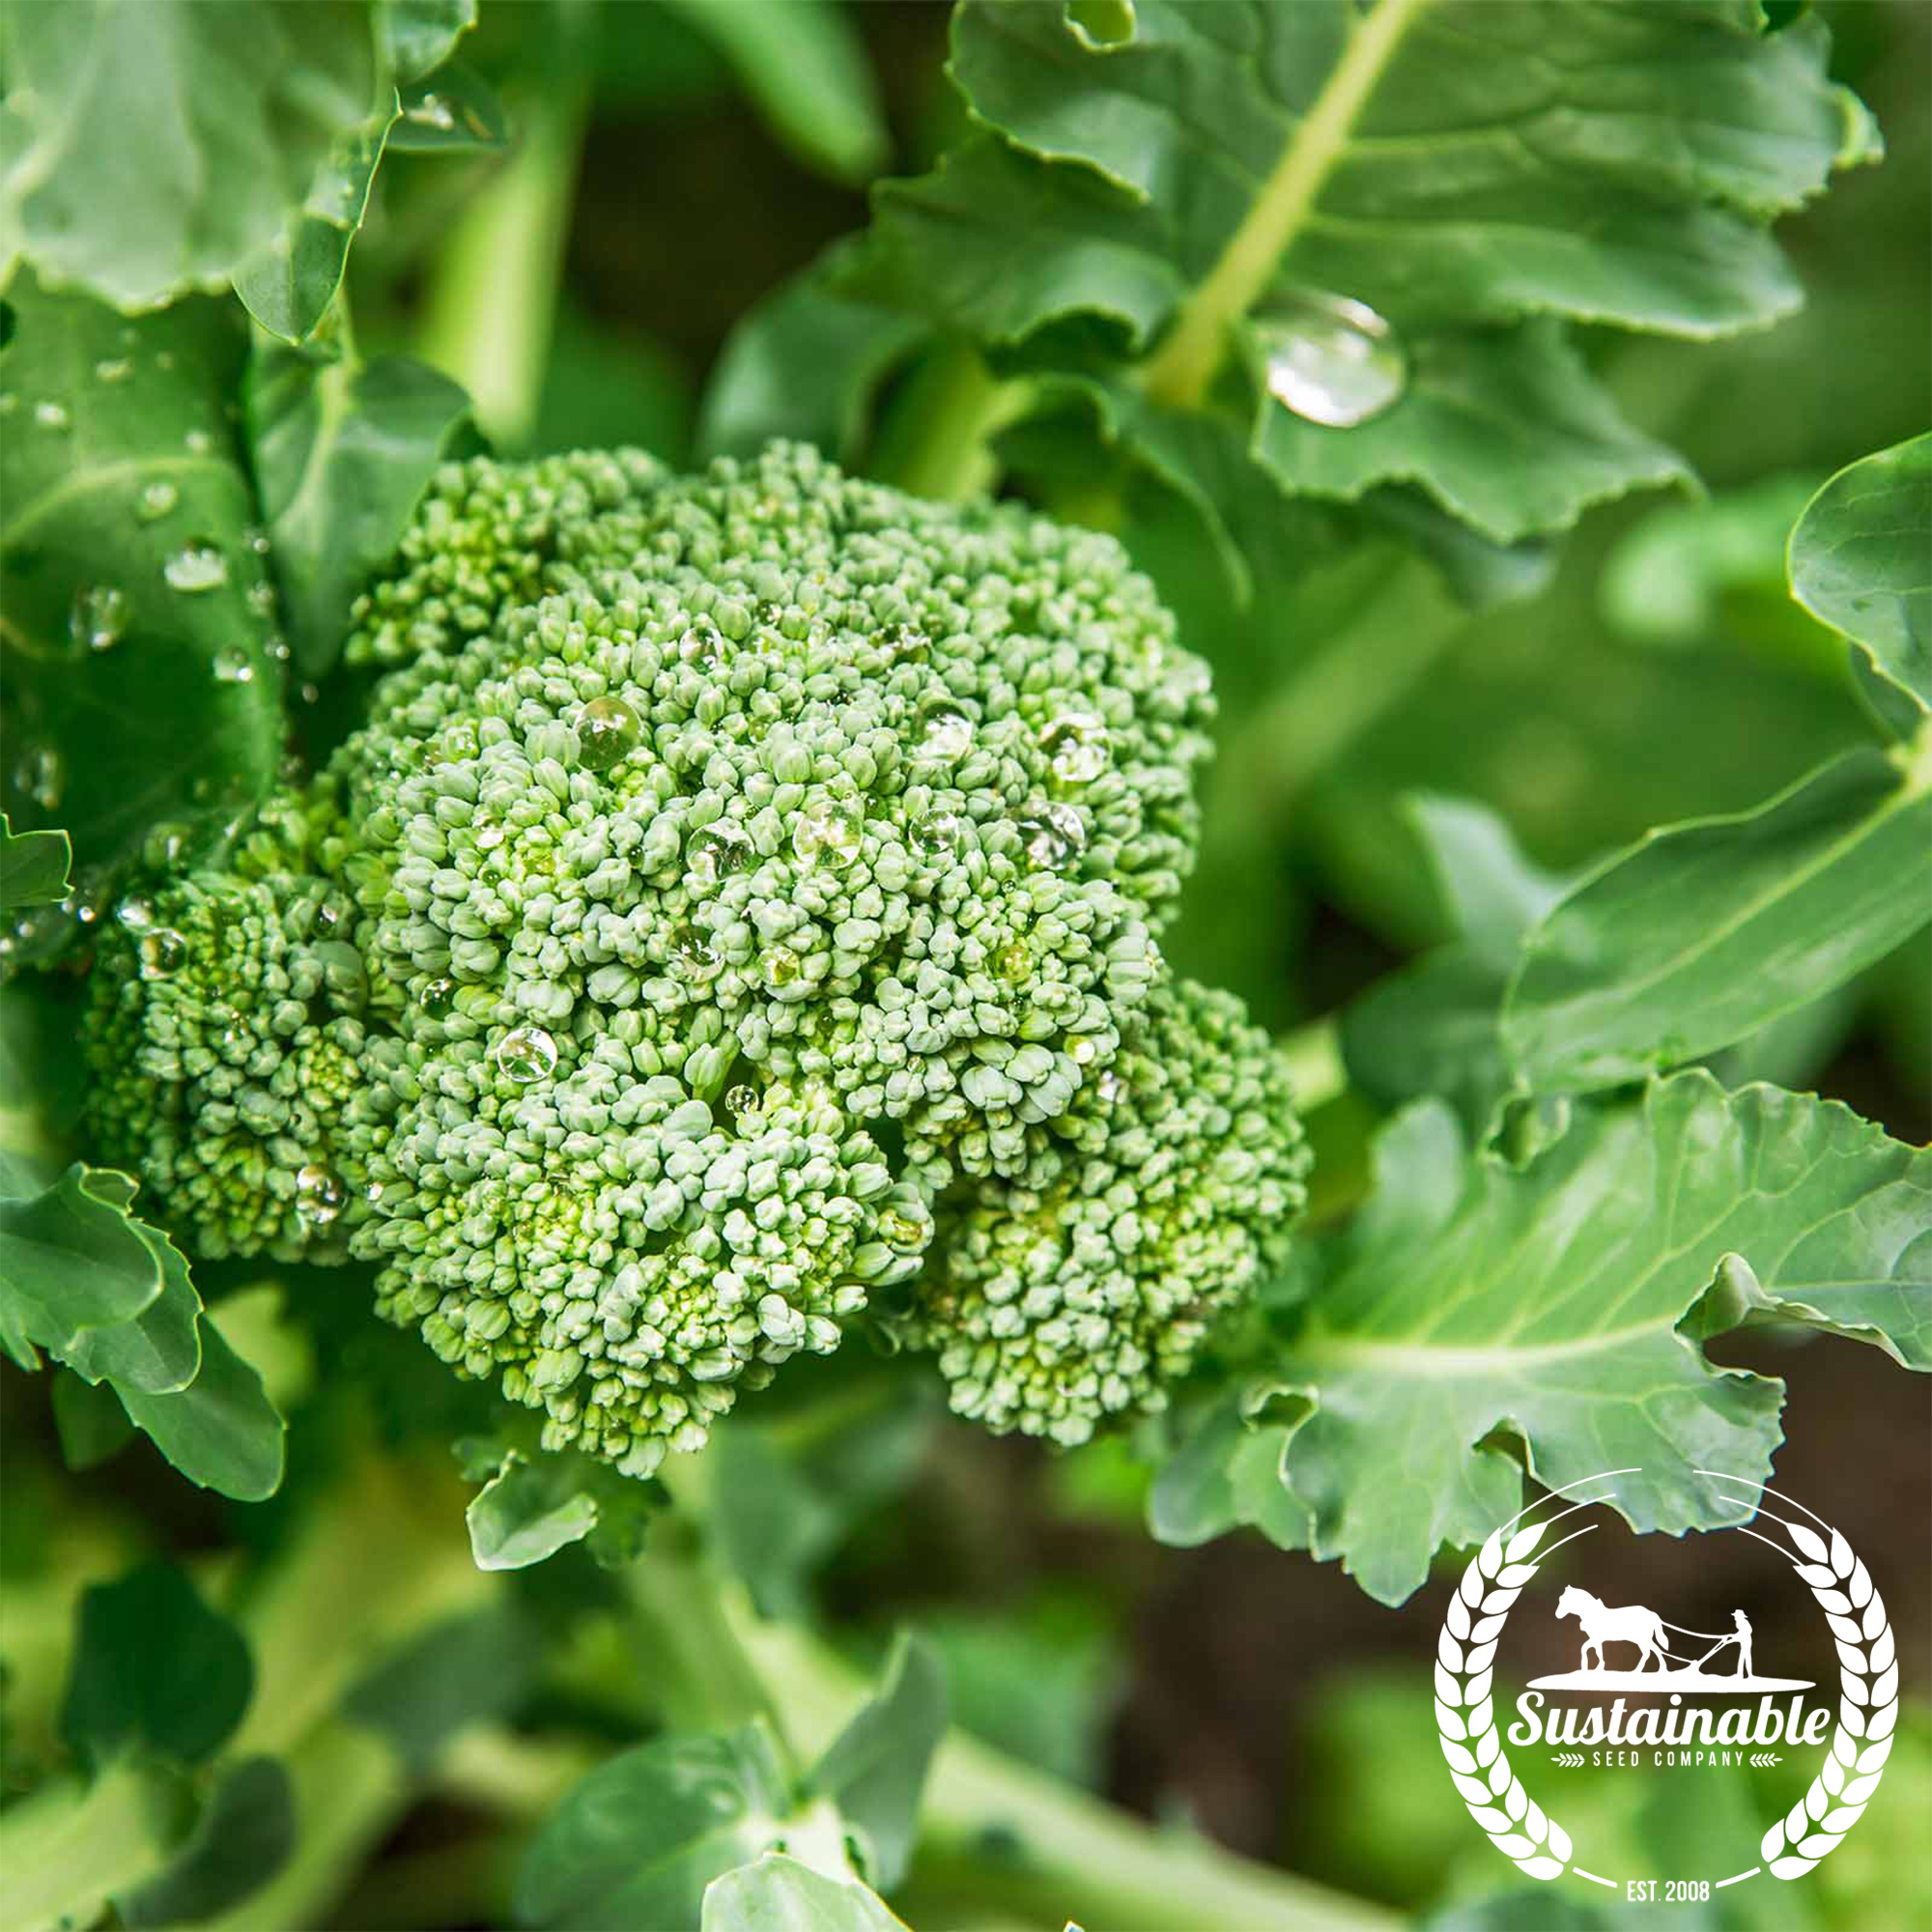 Broccoli - Sprouting - Di Cicco (organic)